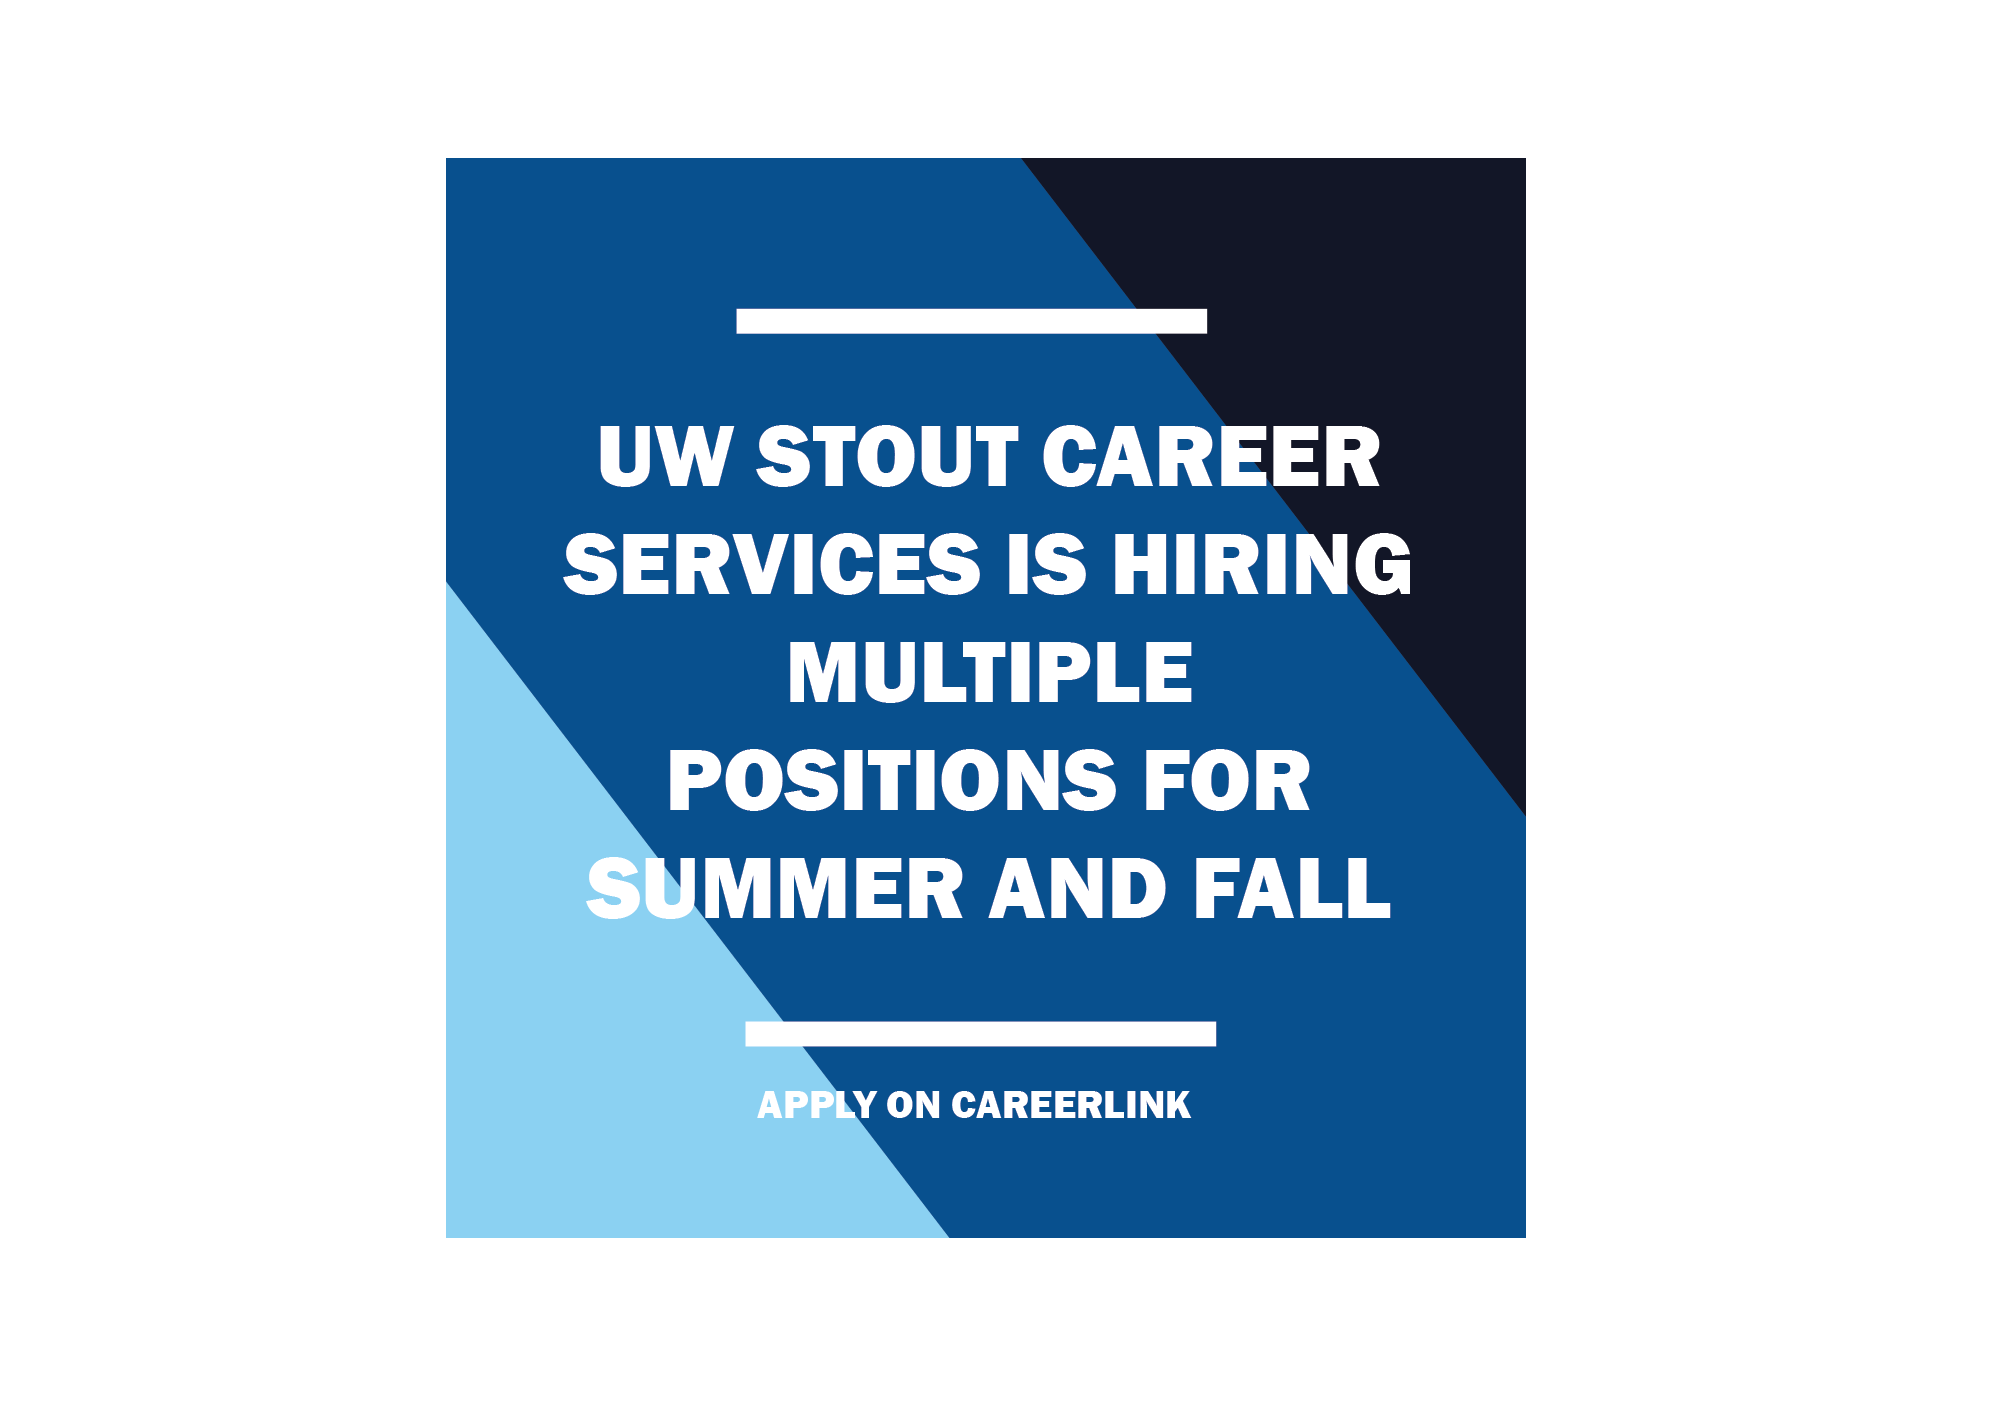 Career Services Hiring